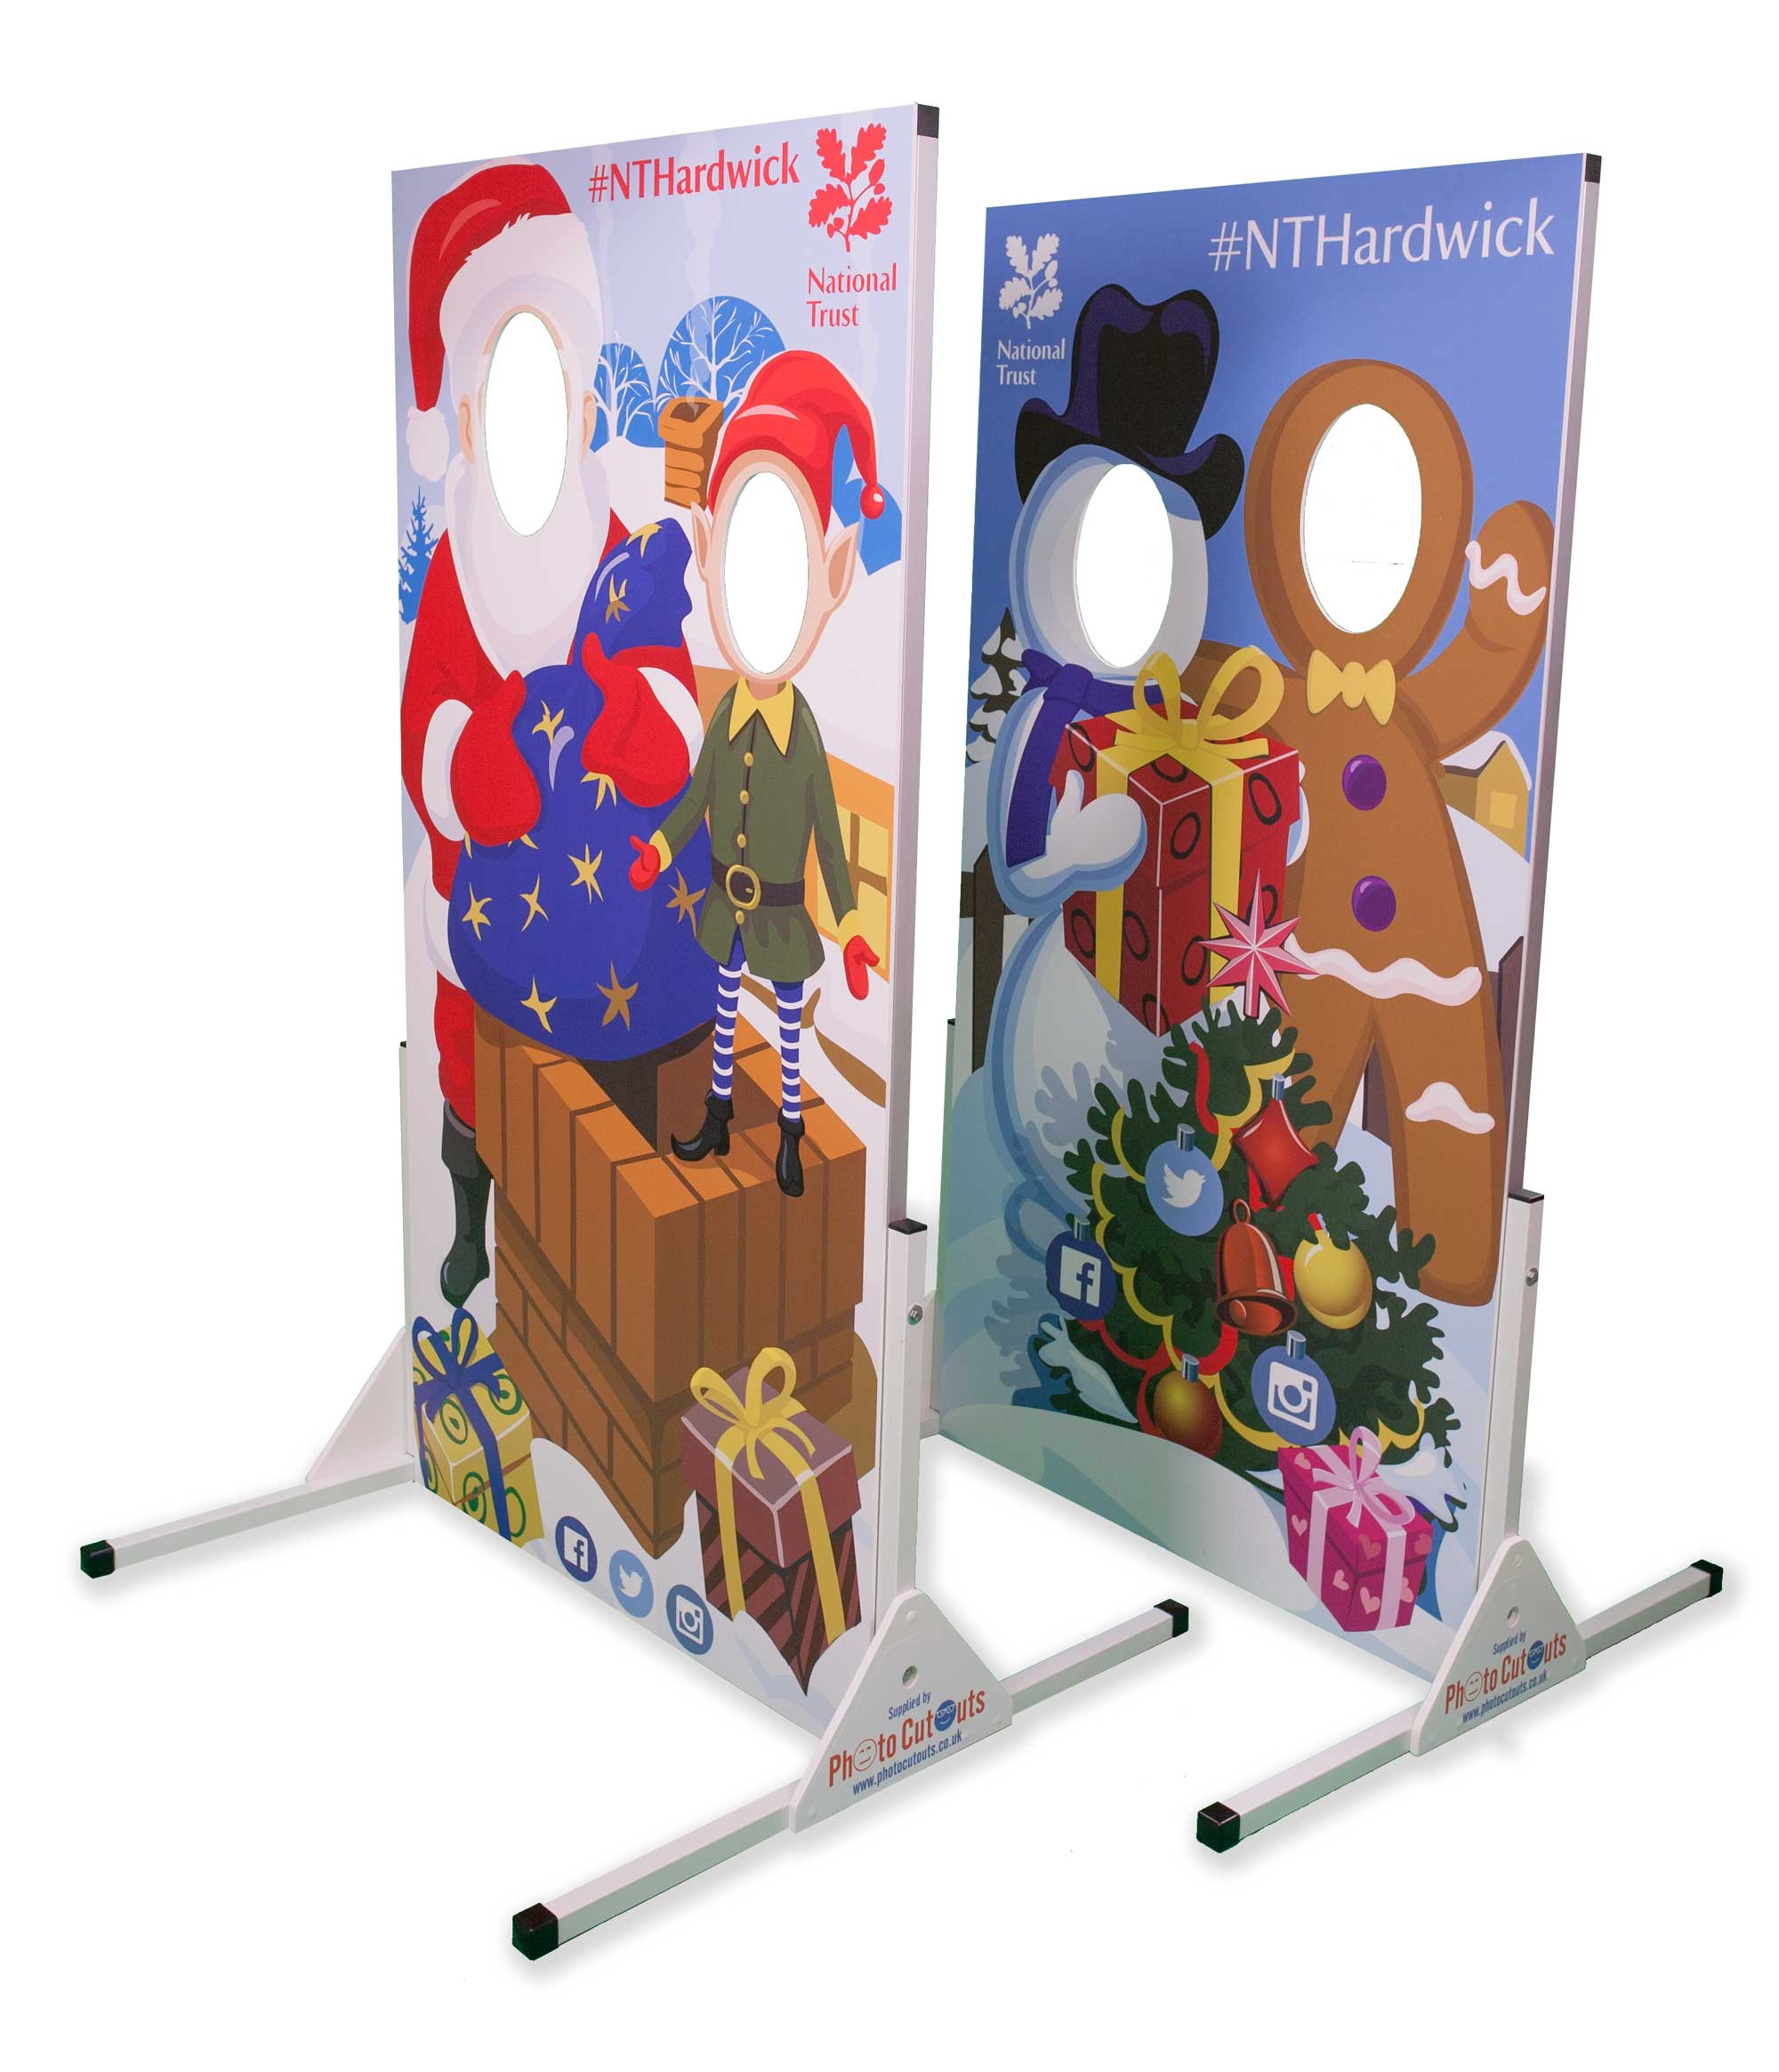 National Trust Christmas photo cutout boards - get your face in the ho-ho-hole!